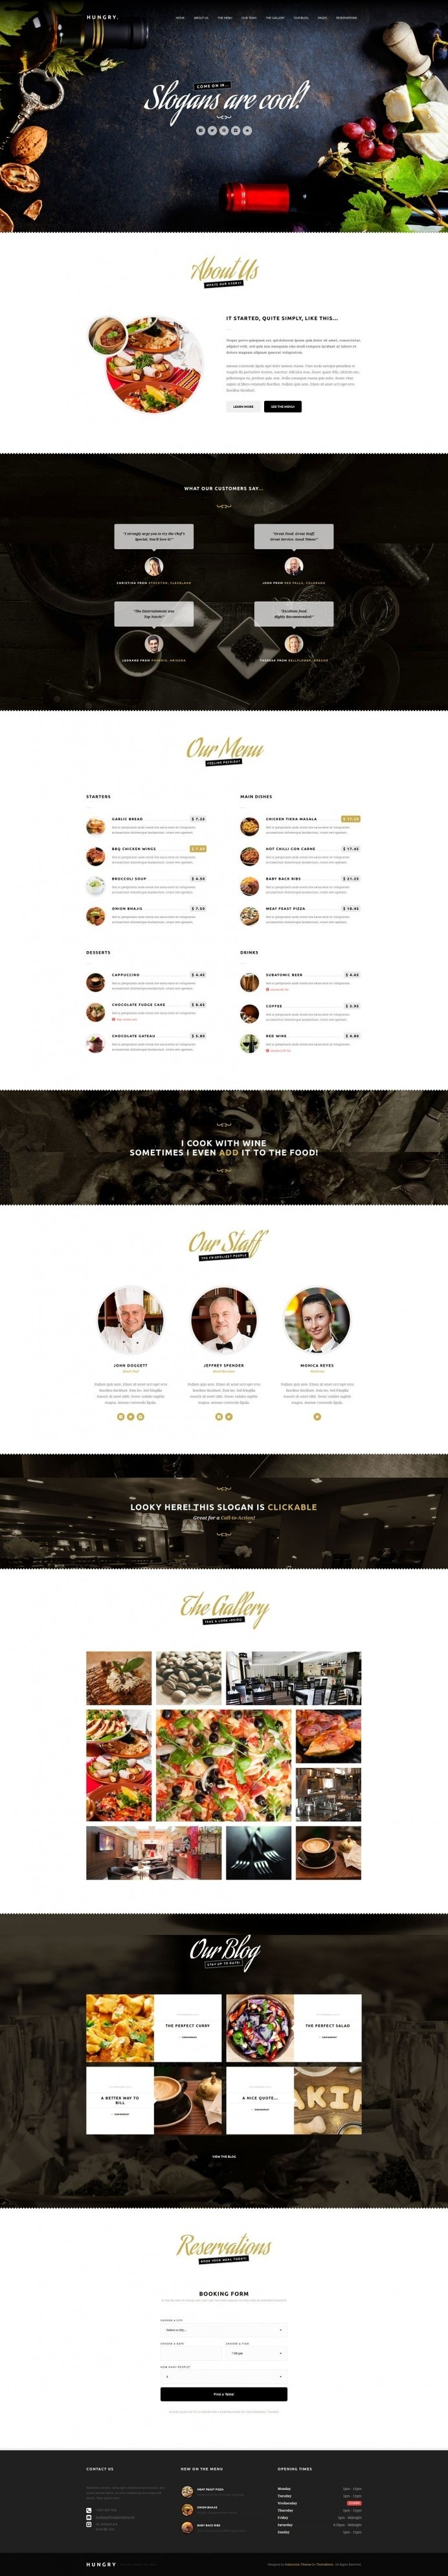 Hungry – A WordPress One Page Restaurant Theme #web design #ui #ux #restaurant